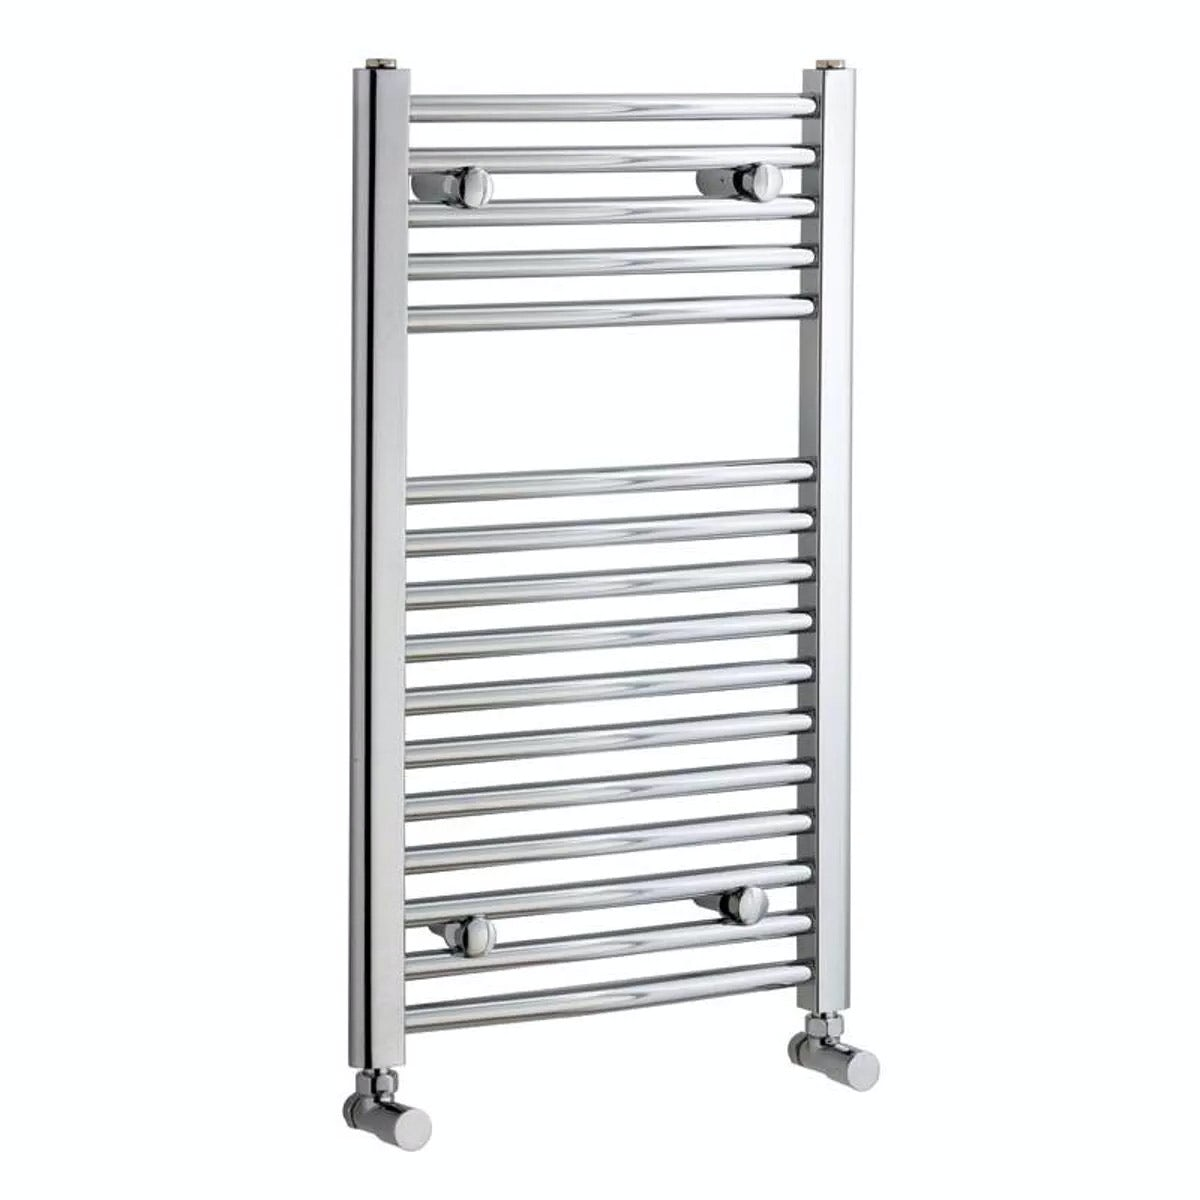 Orchard Elsdon heated towel rail 750 x 450